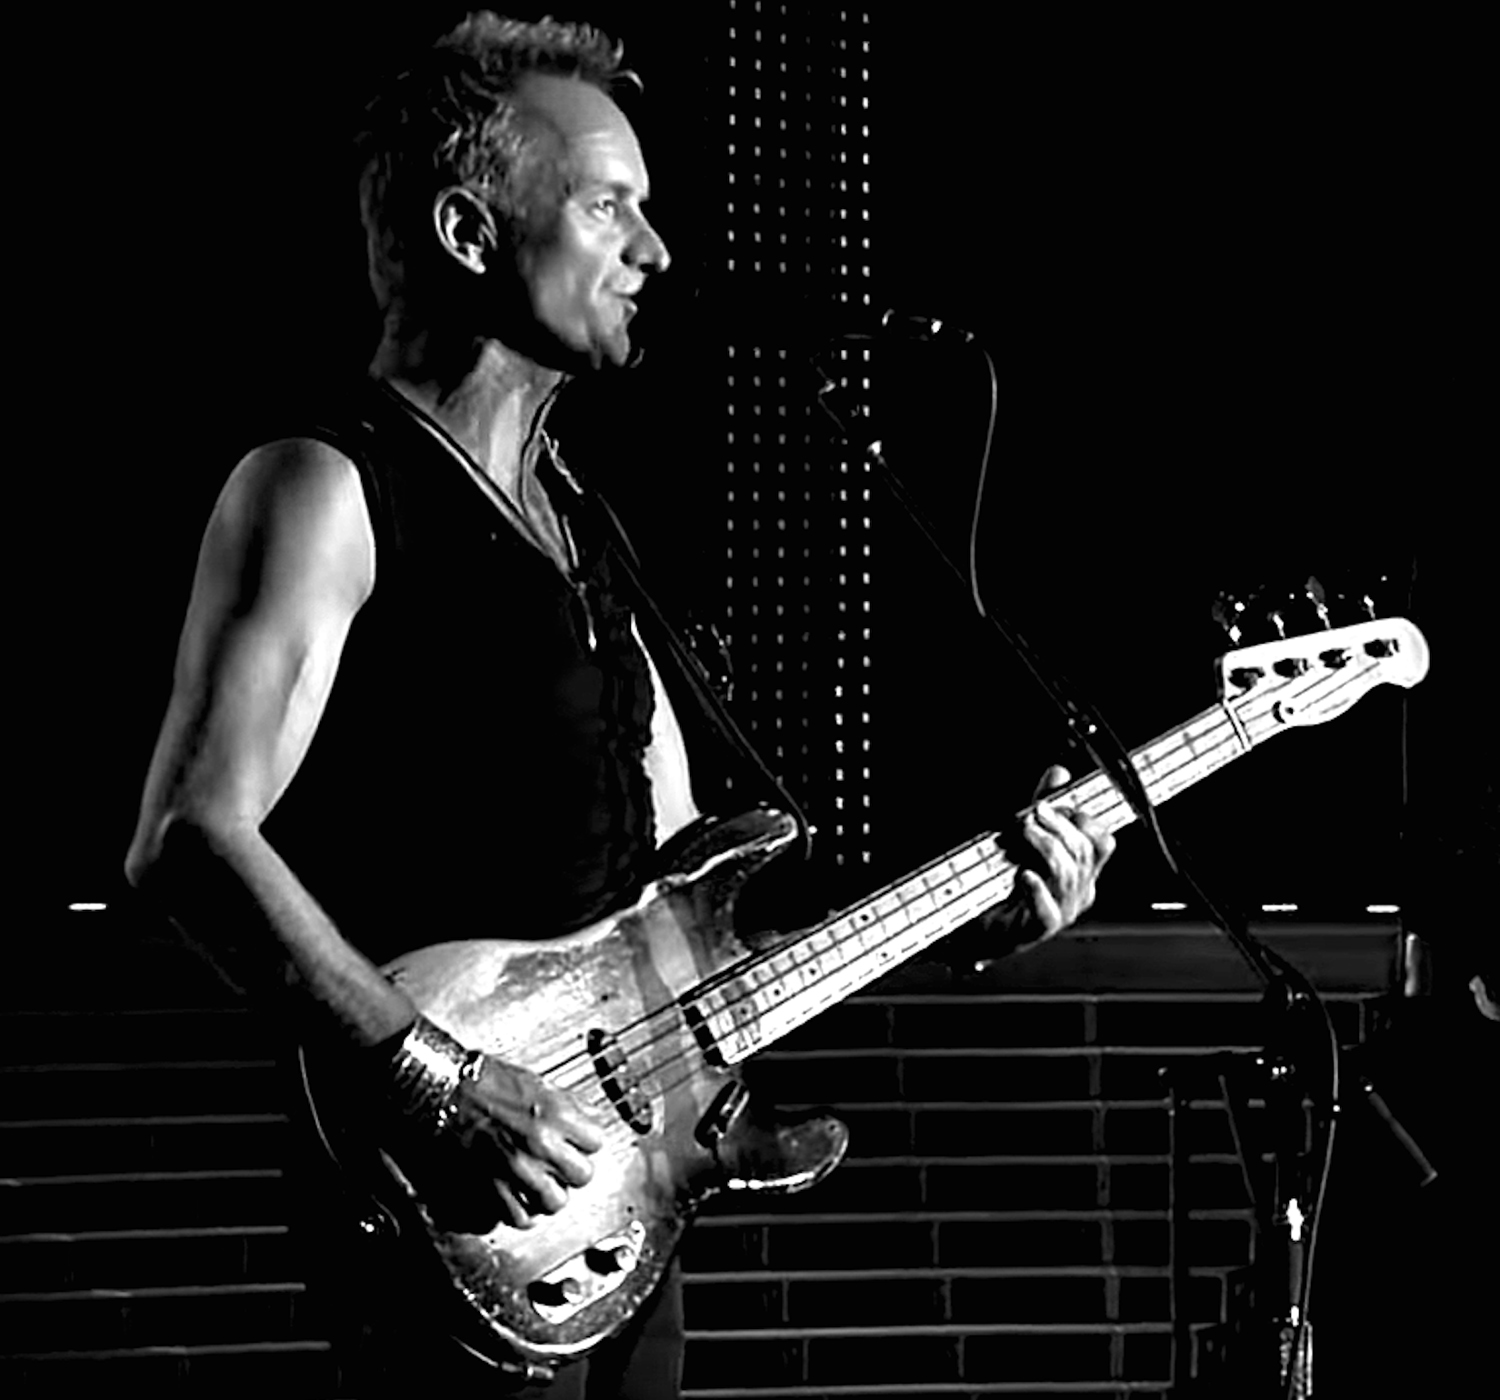 Sting<br><font size=1> The Police, Sting  </font>